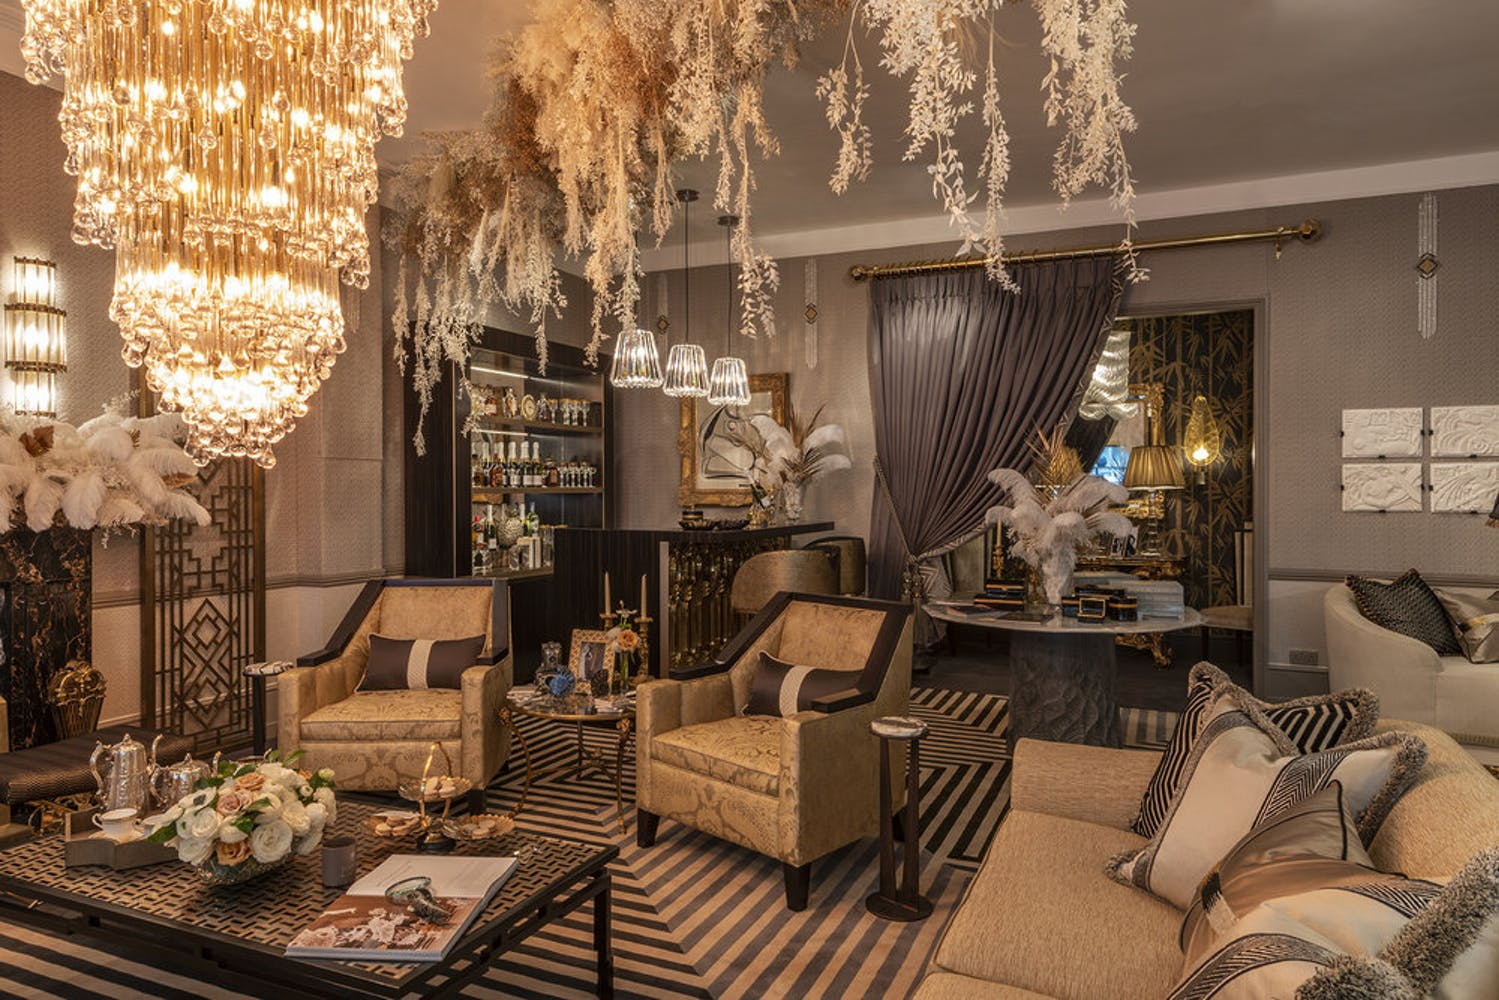 The Gatsby Suite roomset